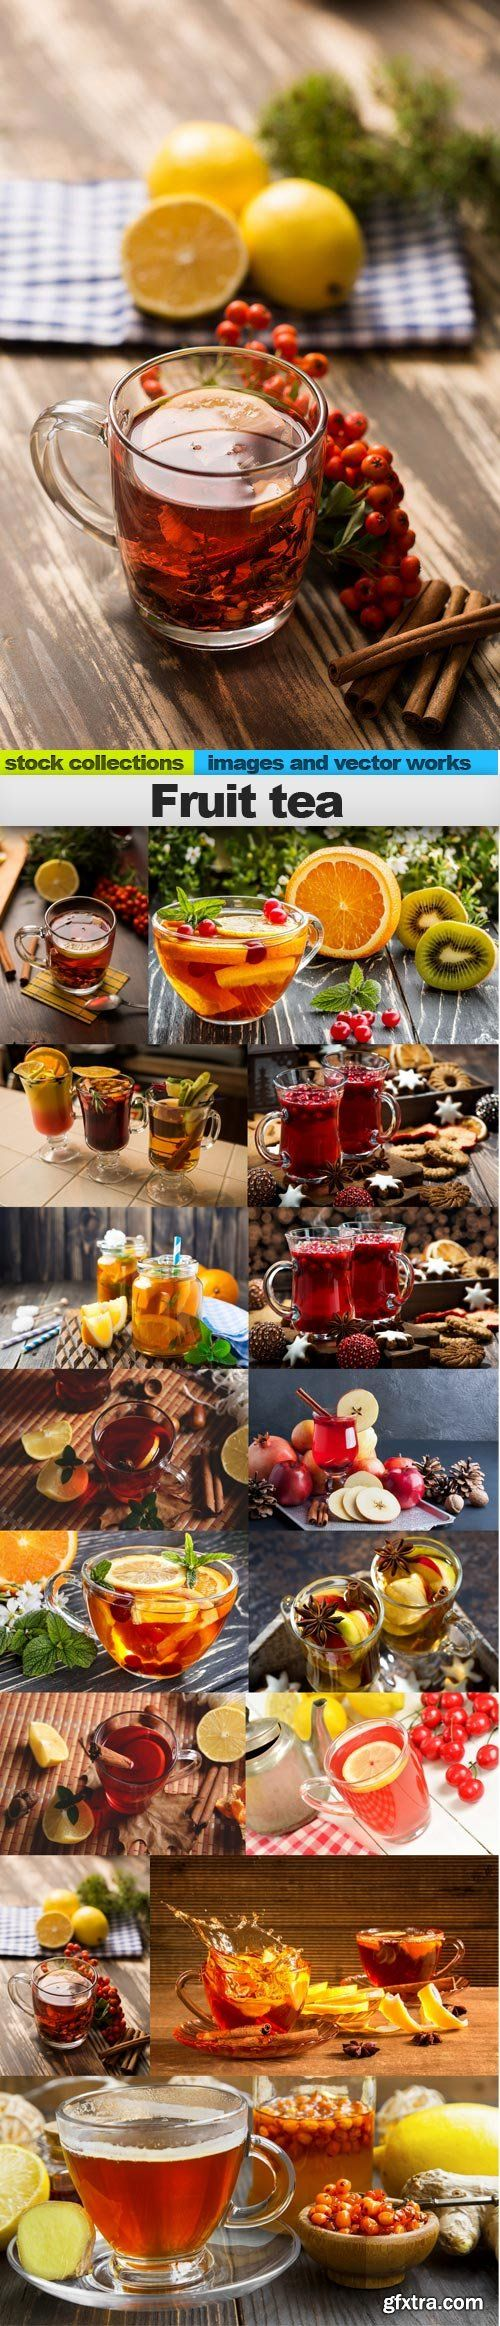 Fruit tea, 15 x UHQ JPEG